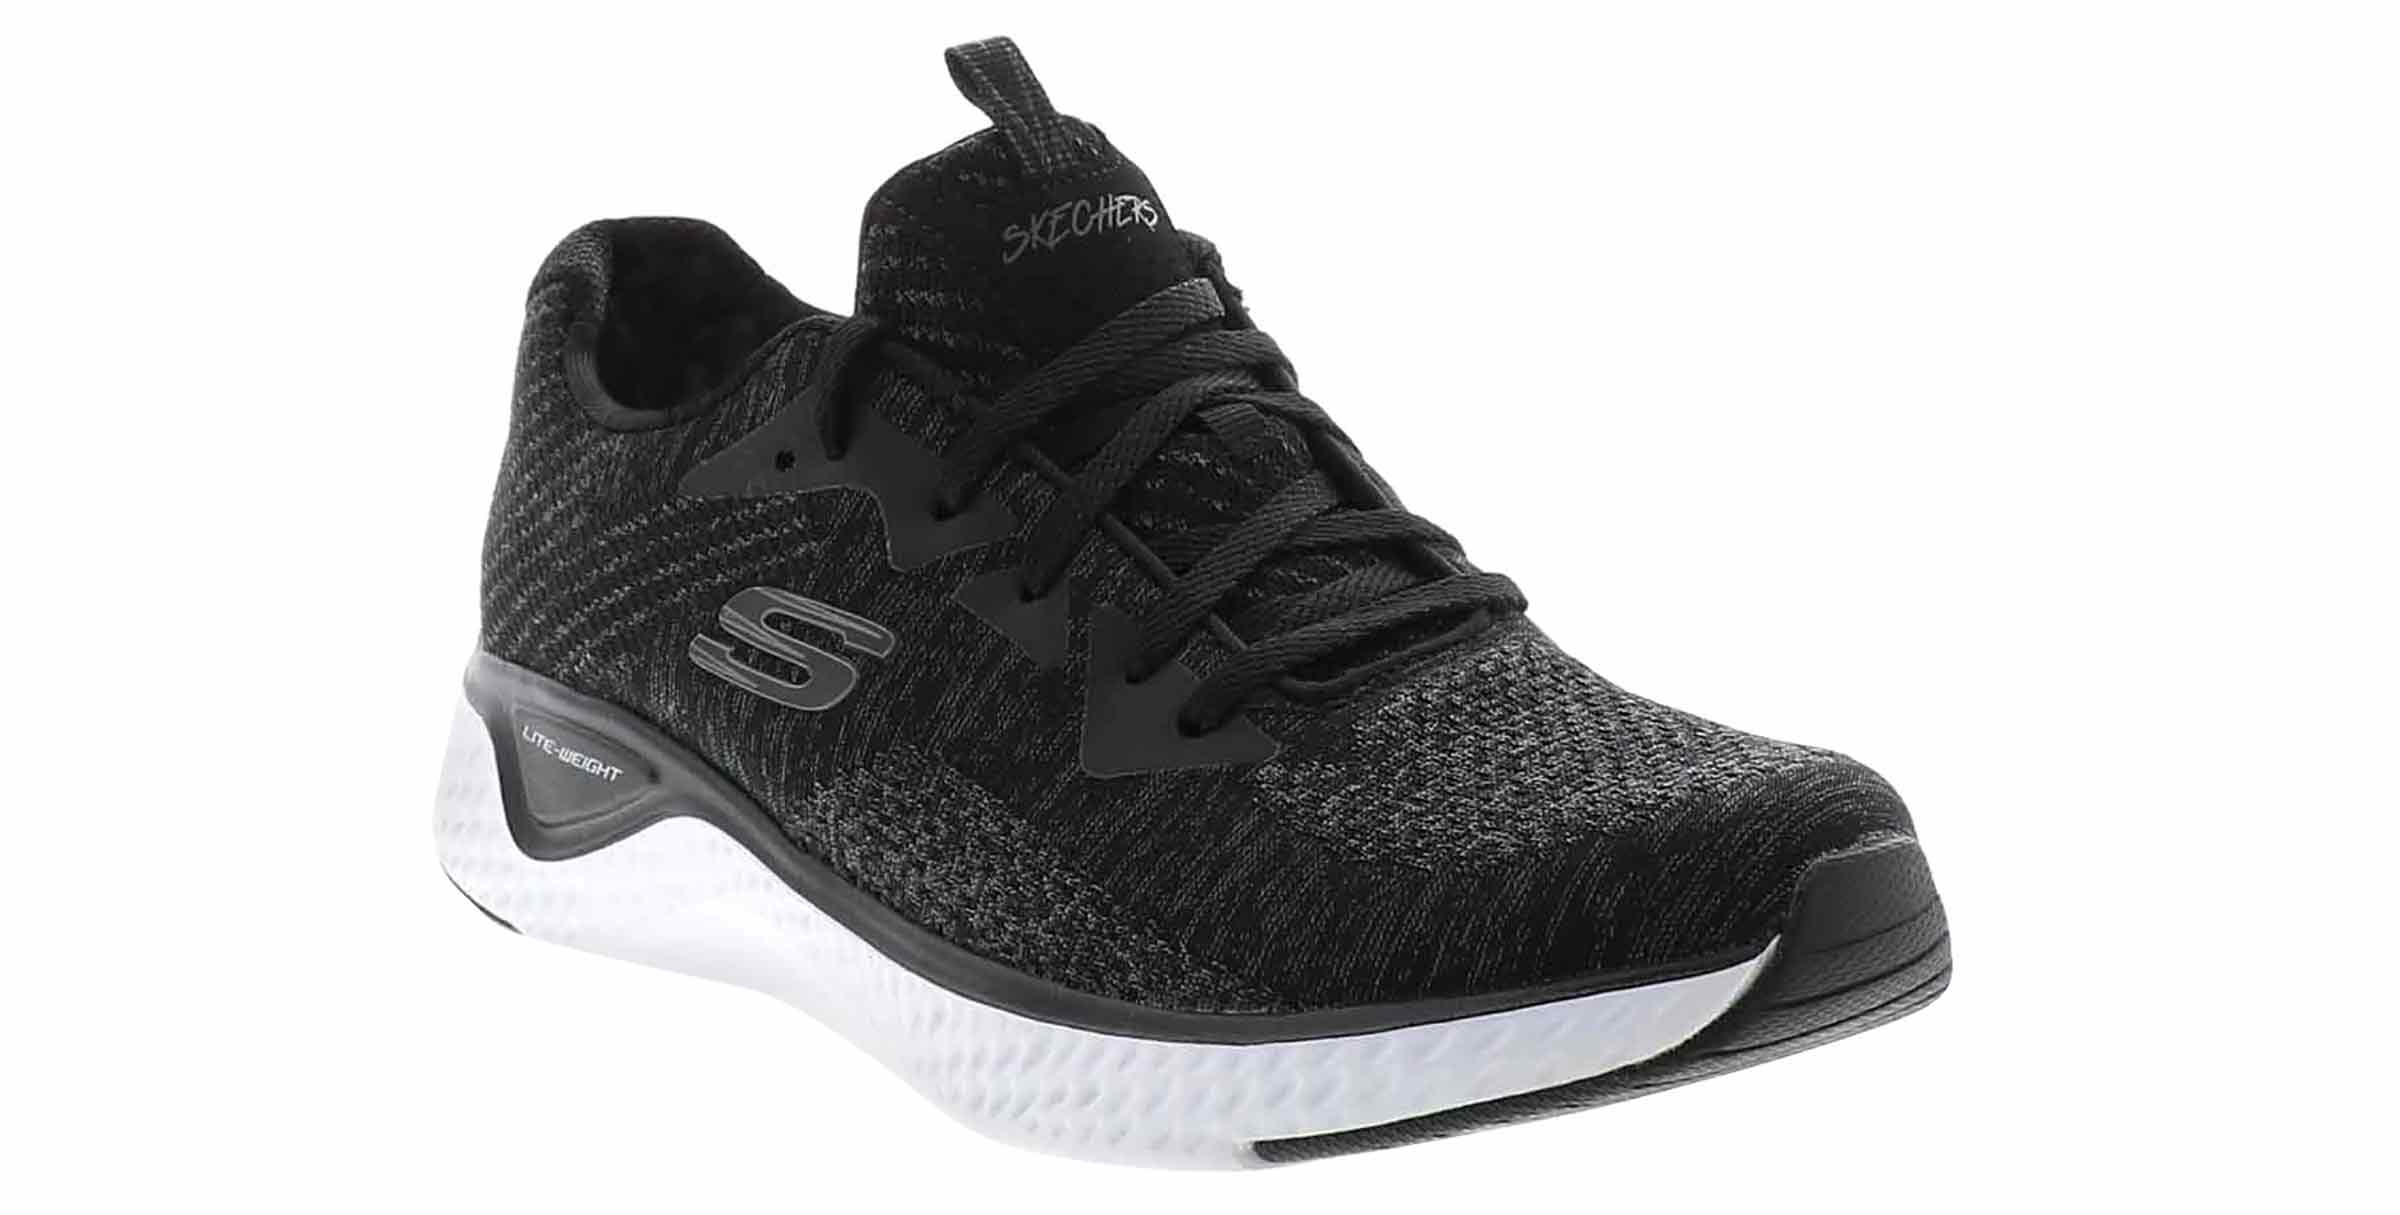 Women's Athletic Shoes, Sneakers Best Prices at Shoe